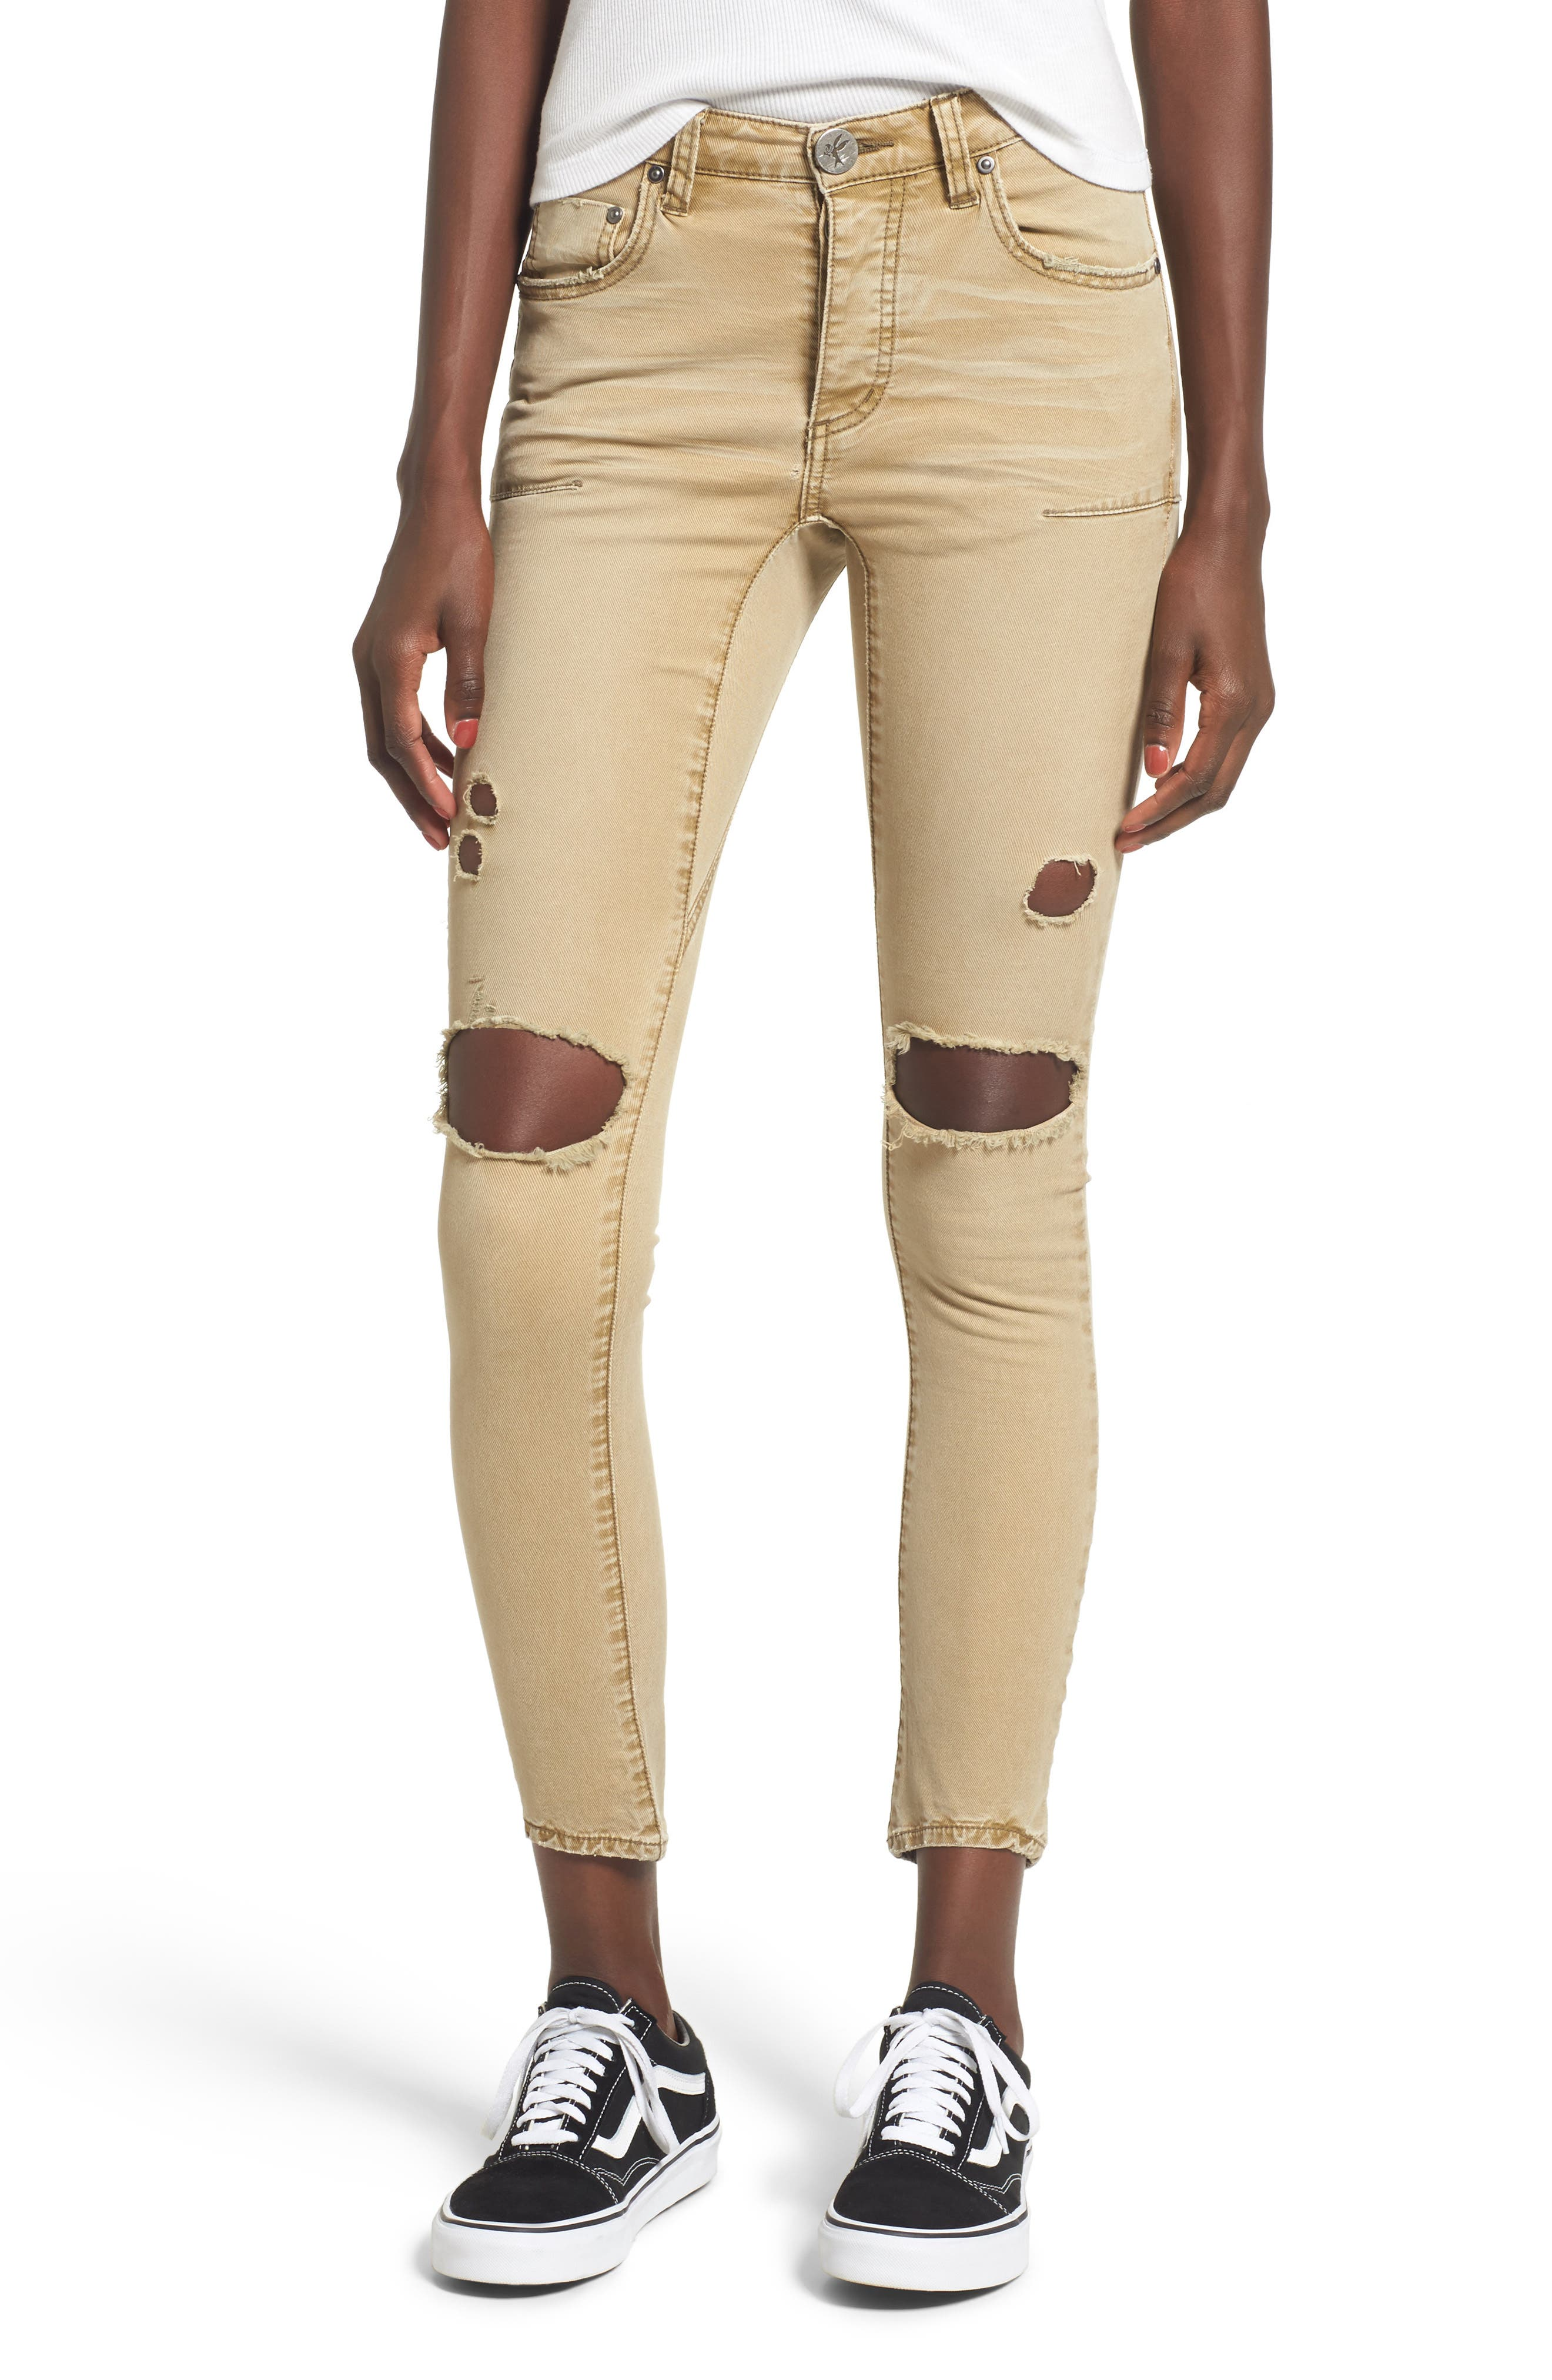 Freebirds Ripped Low Waist Skinny Jeans,                             Main thumbnail 1, color,                             250